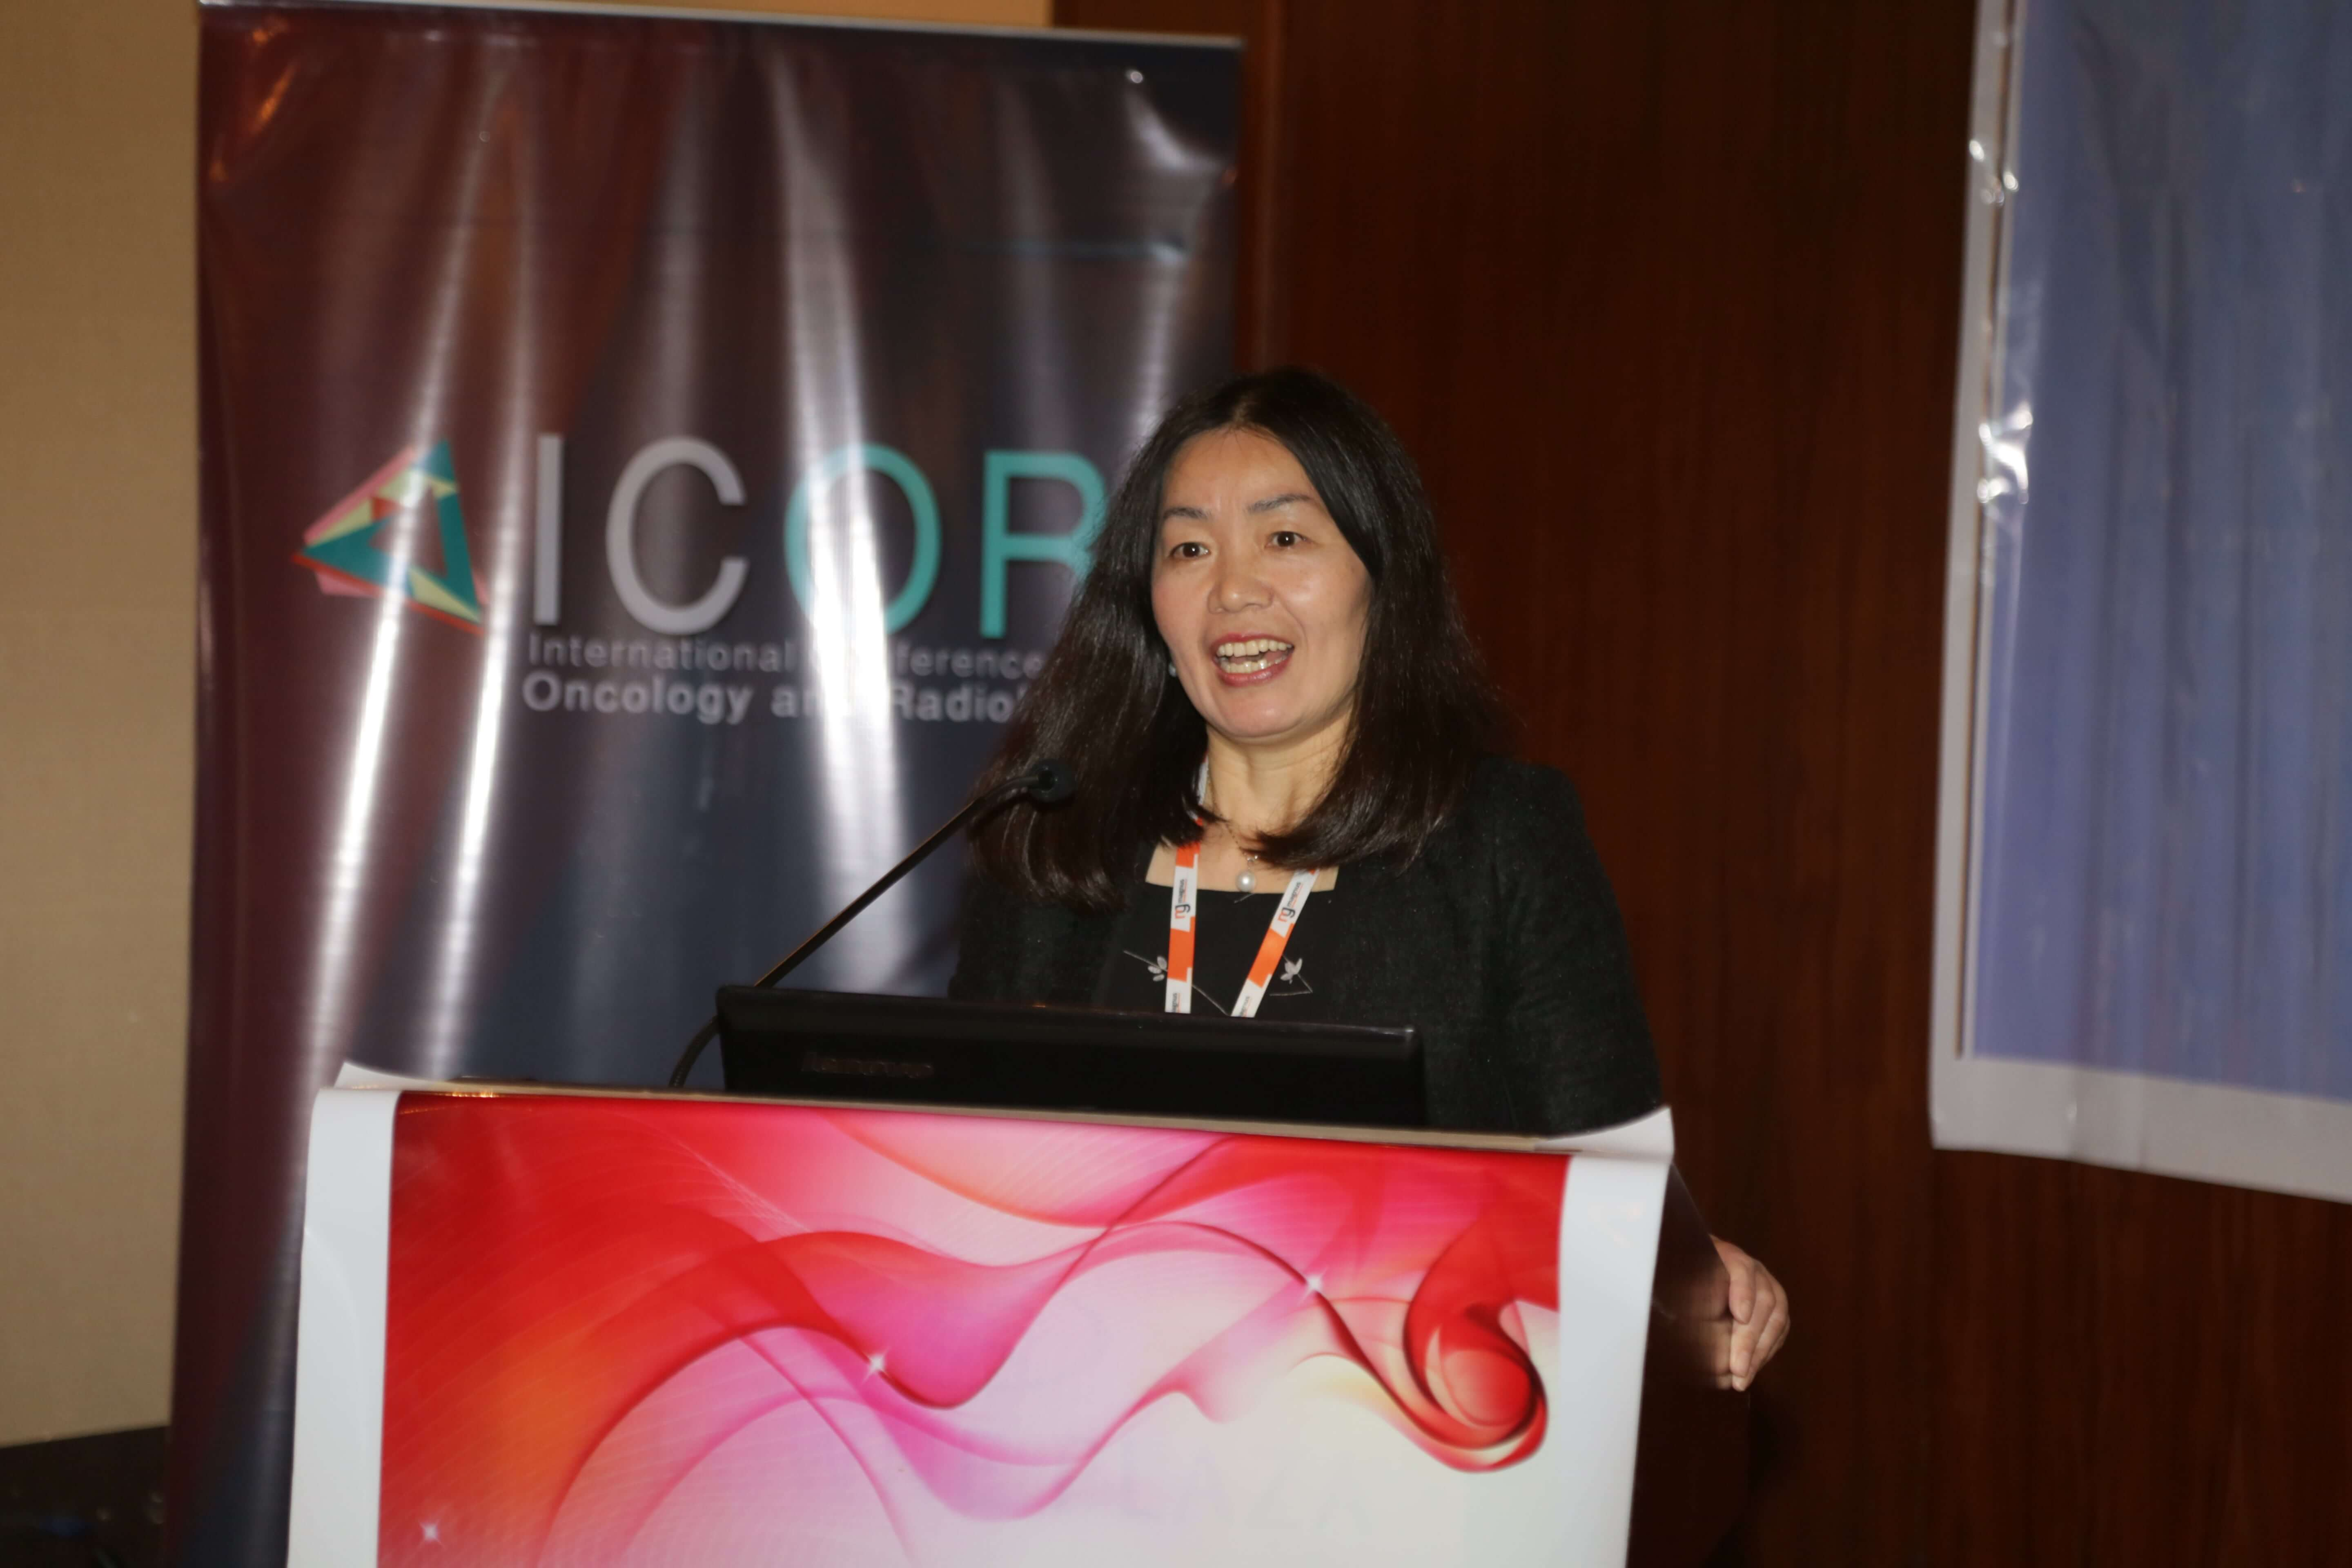 Cancer Conferences - Dr. Xiufen Zheng